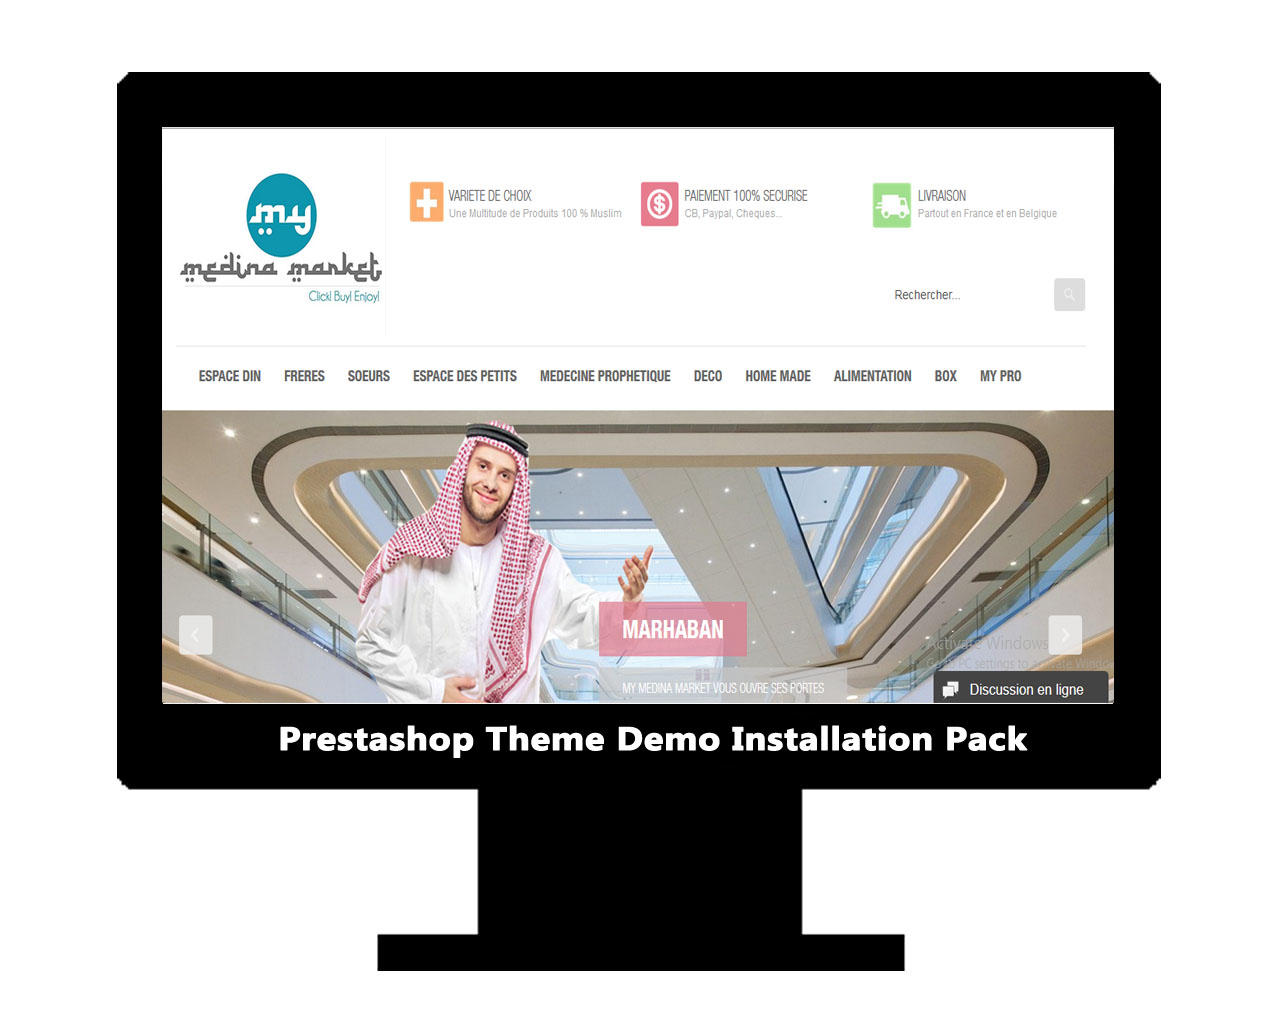 Prestashop Theme Installation & Demo Setup by WofaMedia - 80545